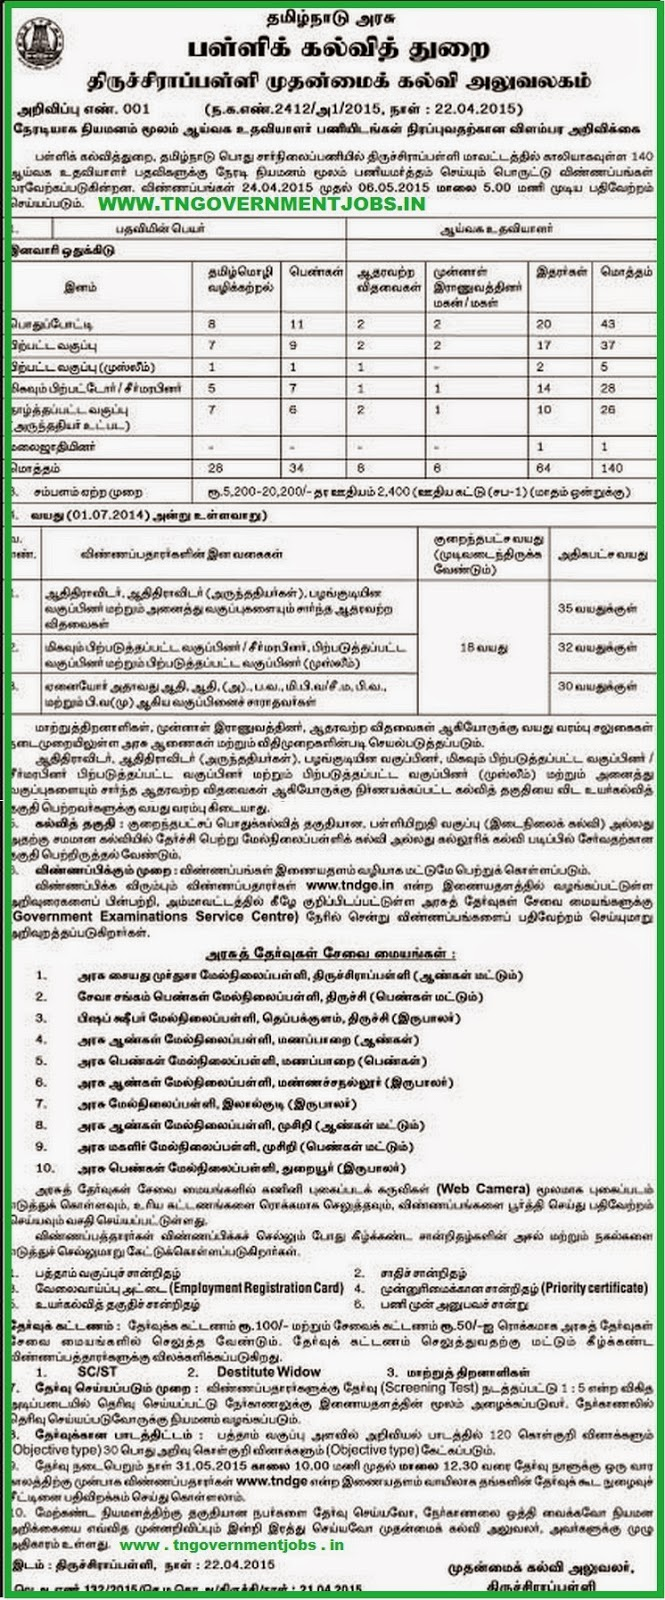 Trichy District CEO Lab Asst Recruitments 2015 (www.tngovernmentjobs.in)